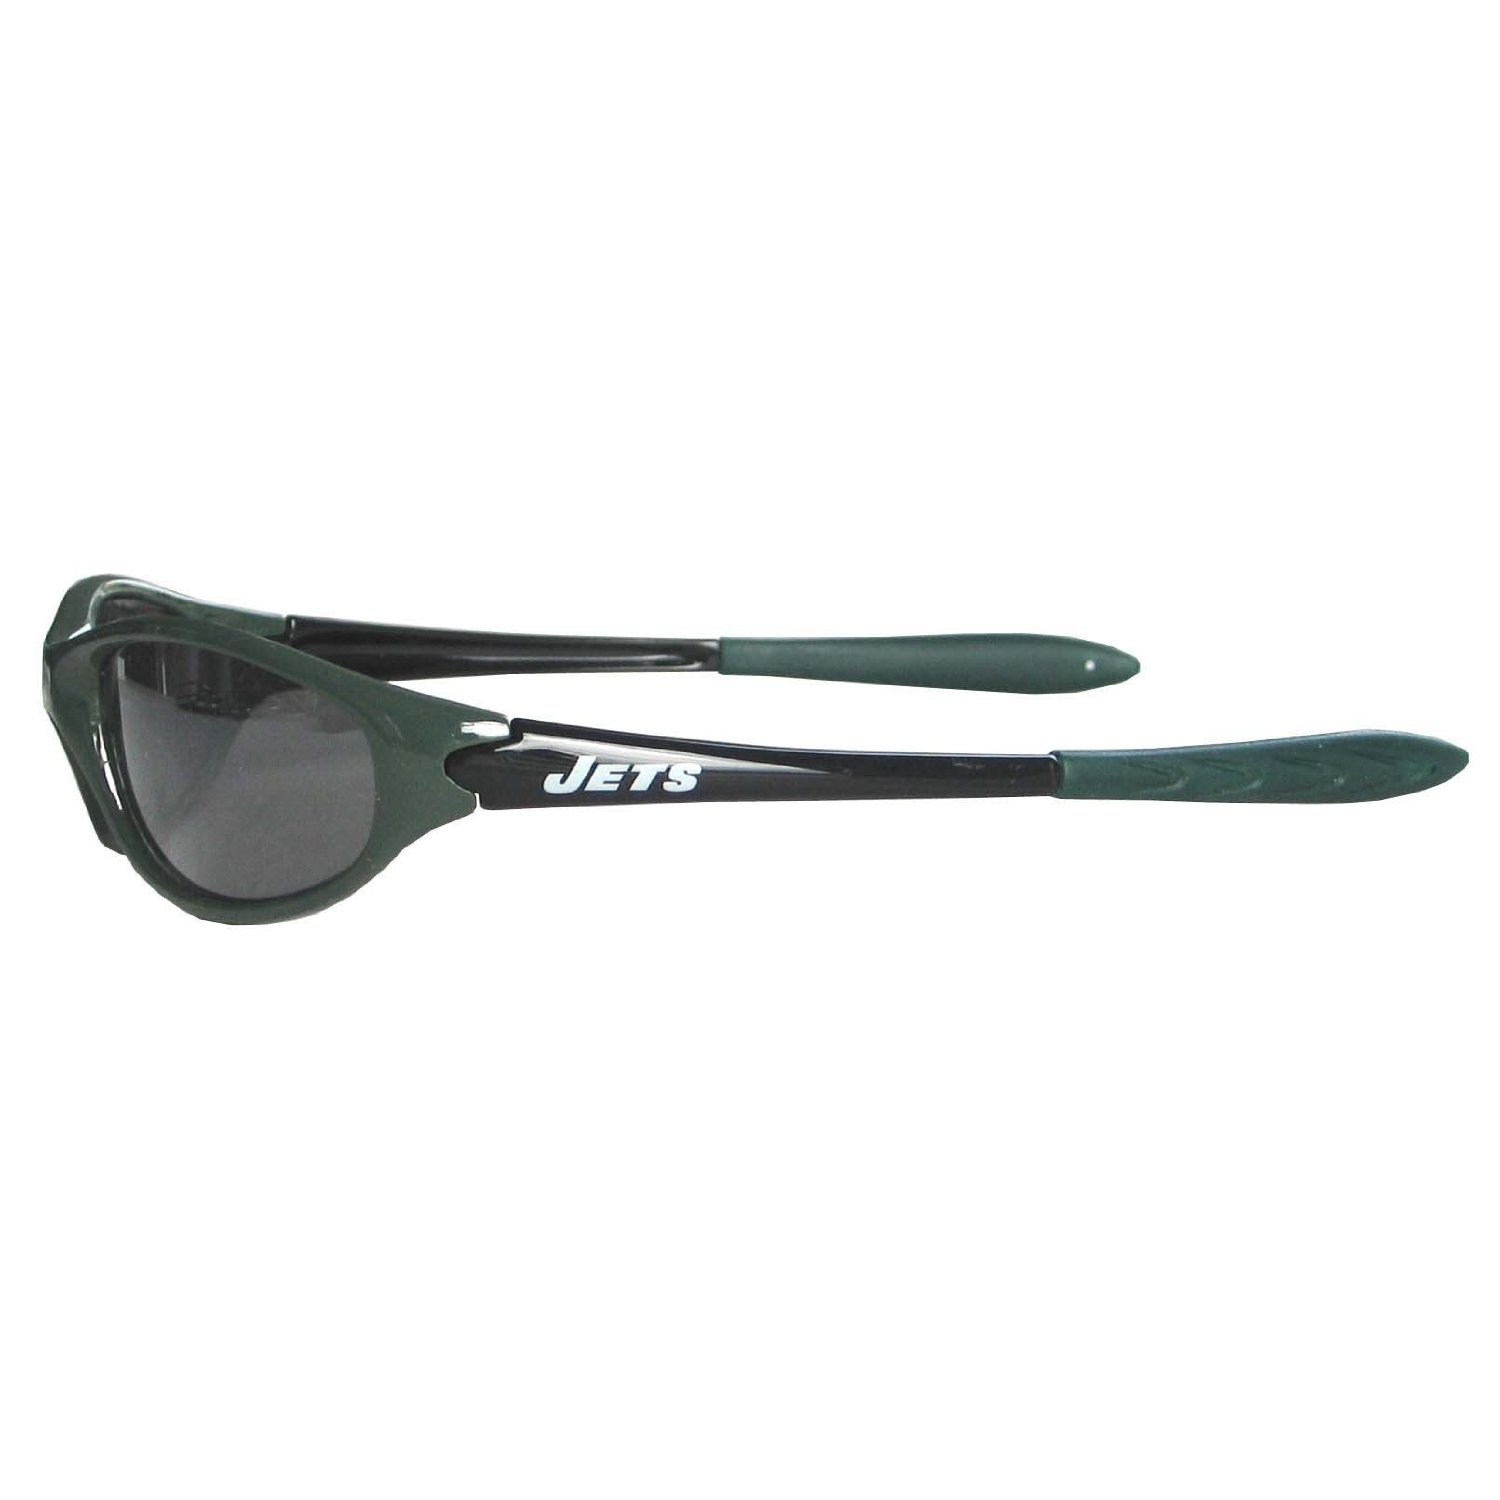 c1b0caee0b Get Quotations · NFL New York Jets Sleek Wrap Sunglasses